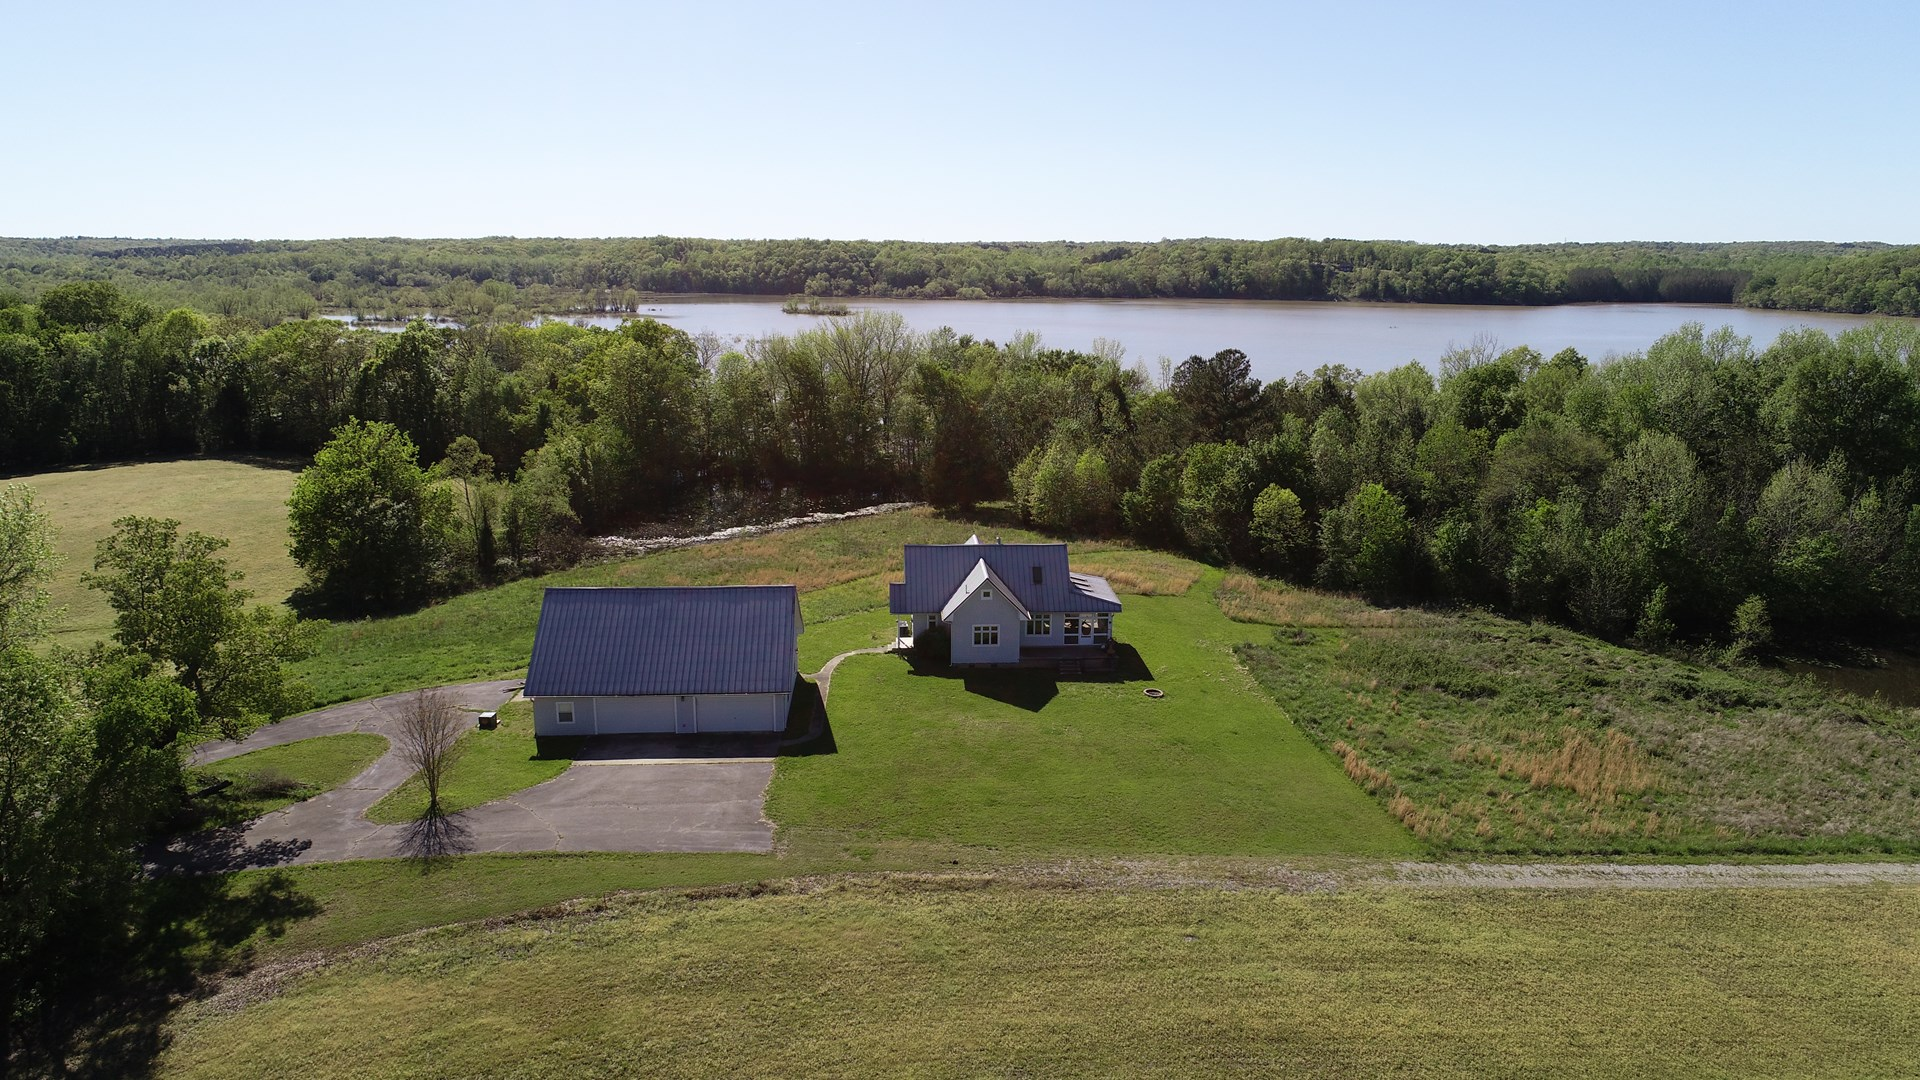 TN Waterfront Home 4 Sale, Benton Co Birdsong Creek, Hunting